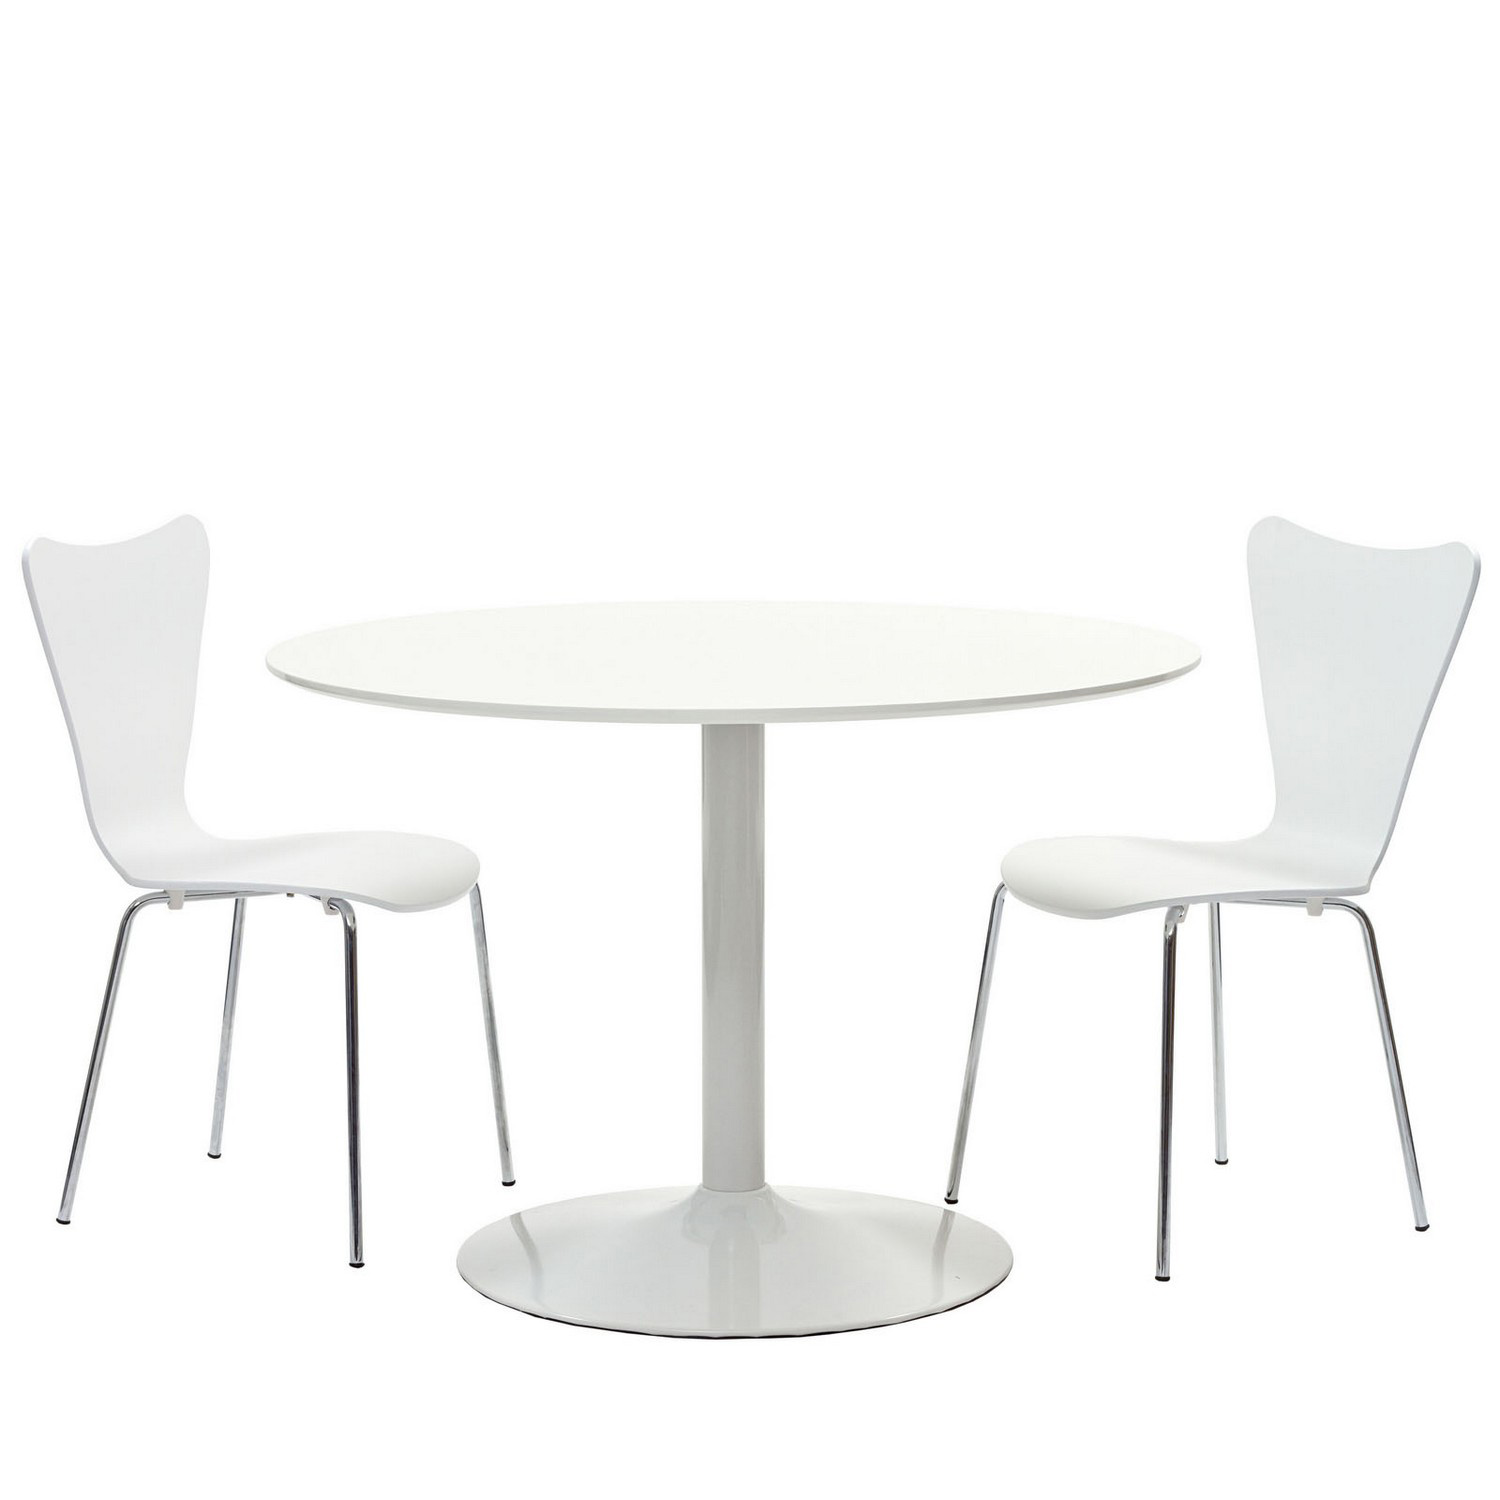 Modway Revolve 3 Piece Dining Set - White